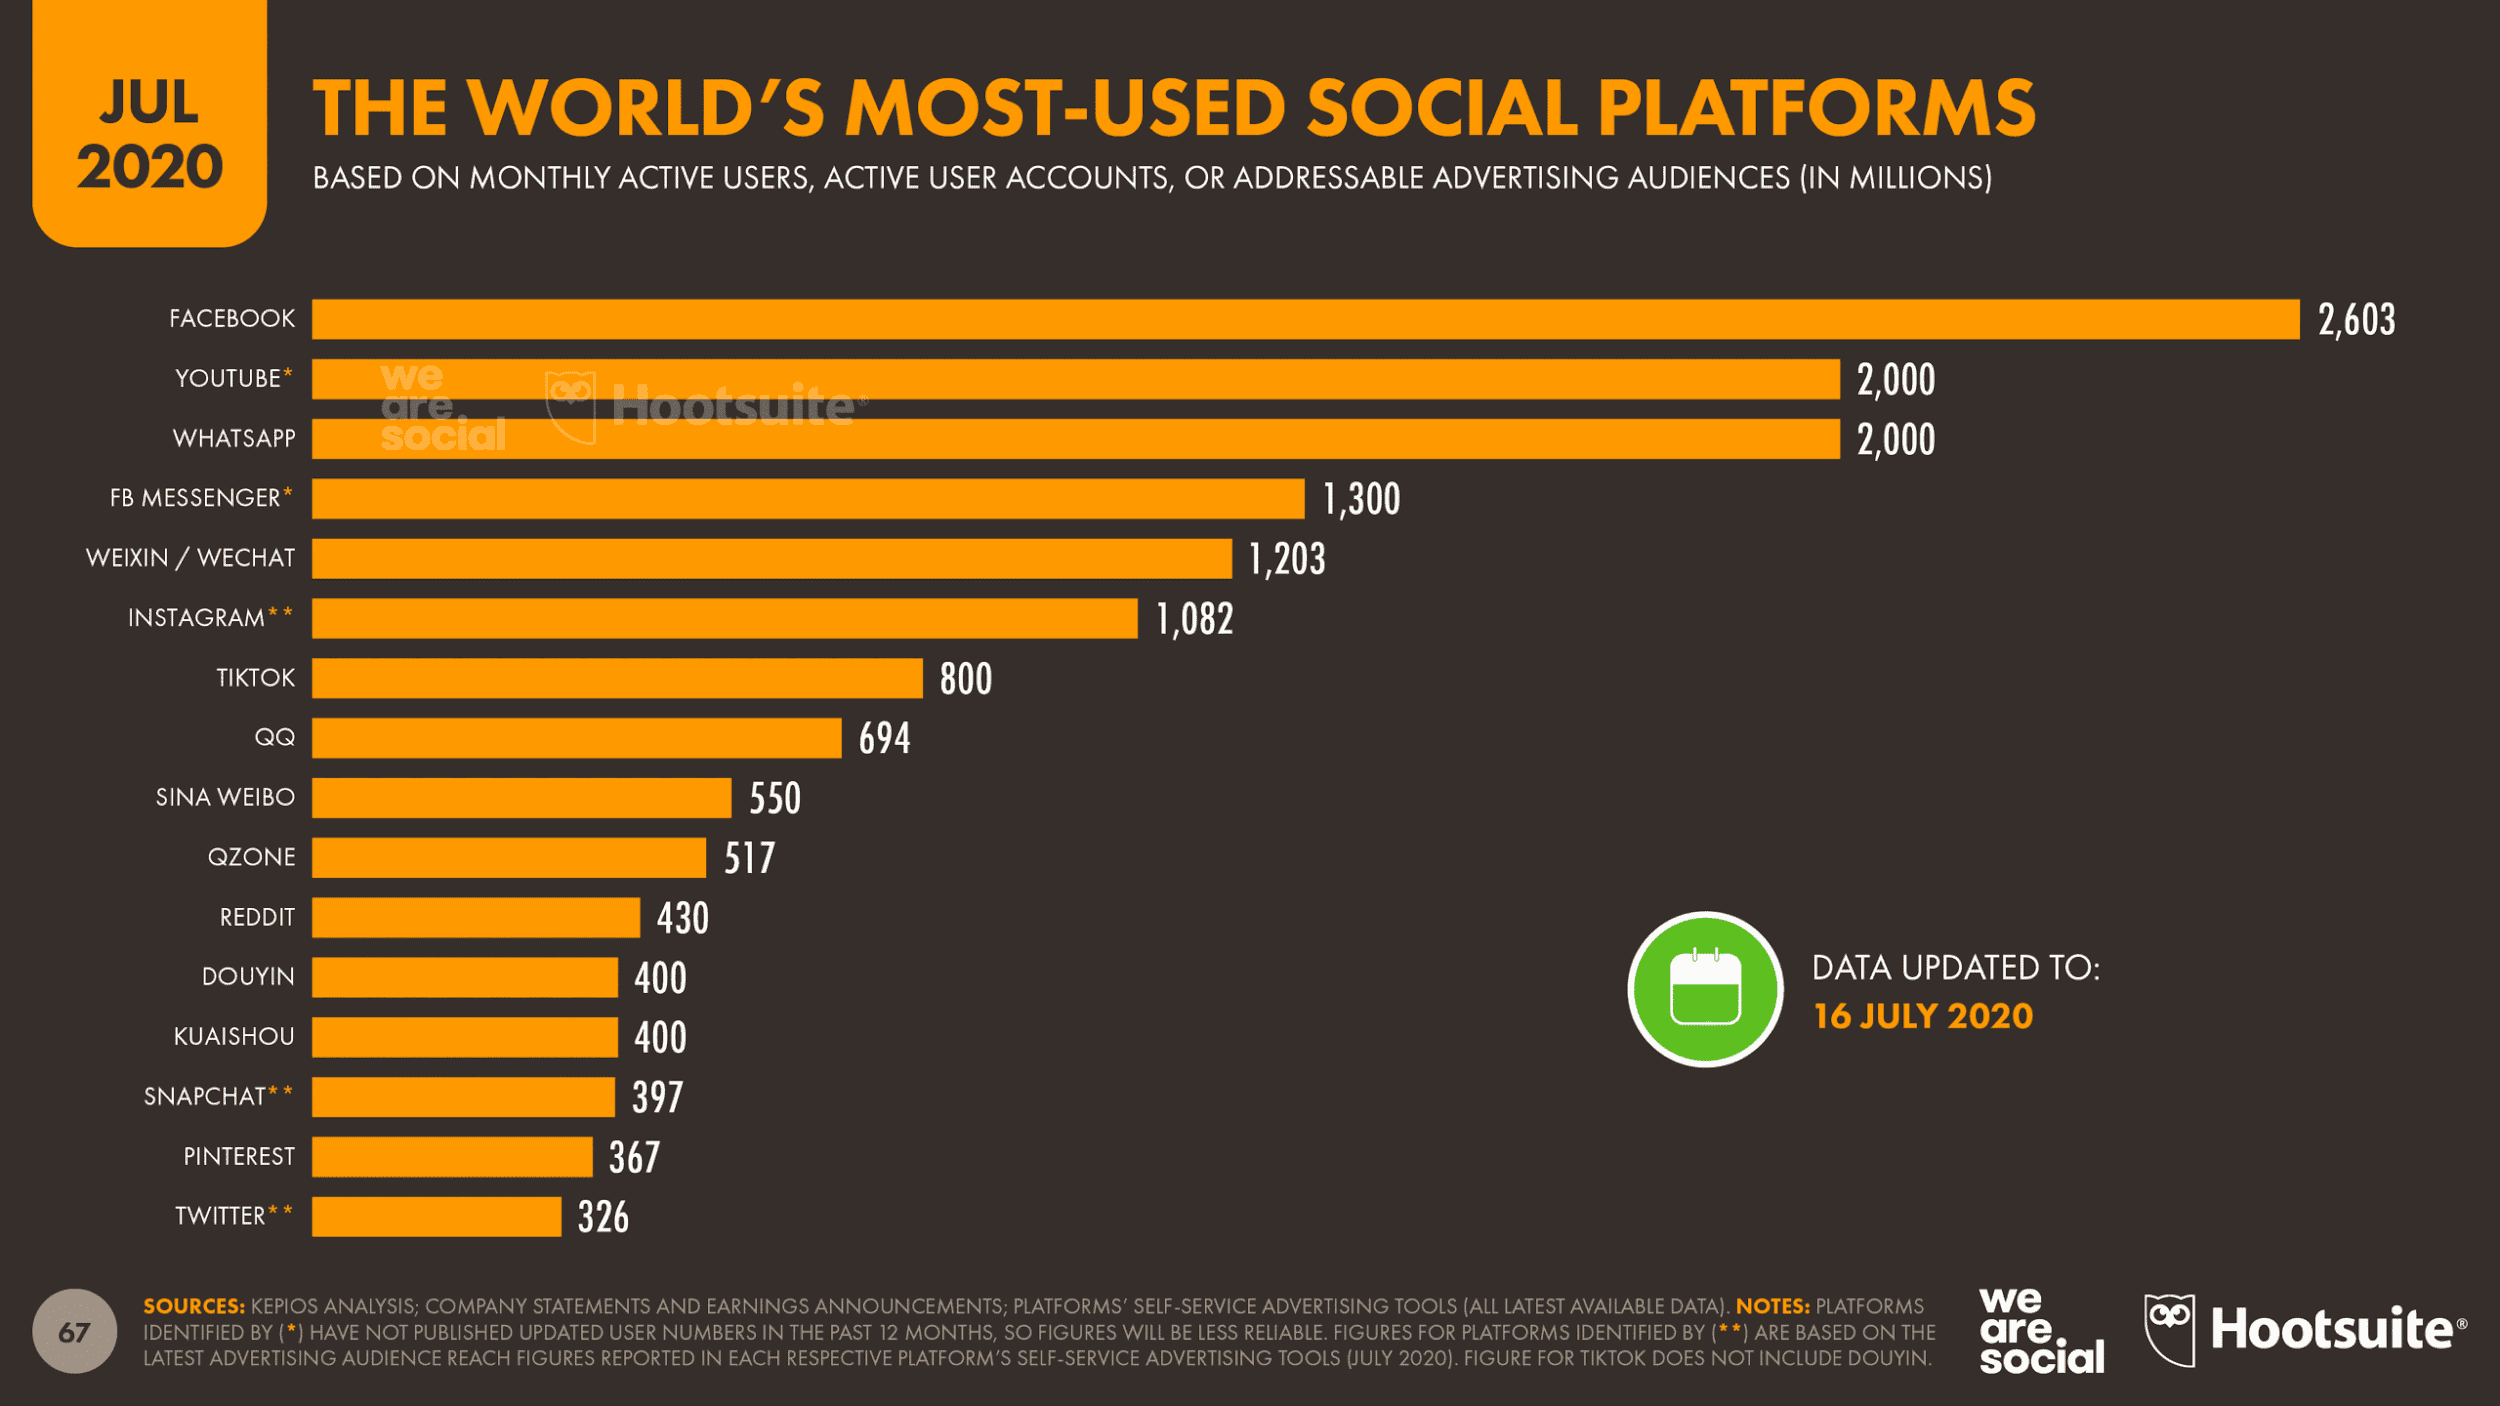 The world's most used social platforms